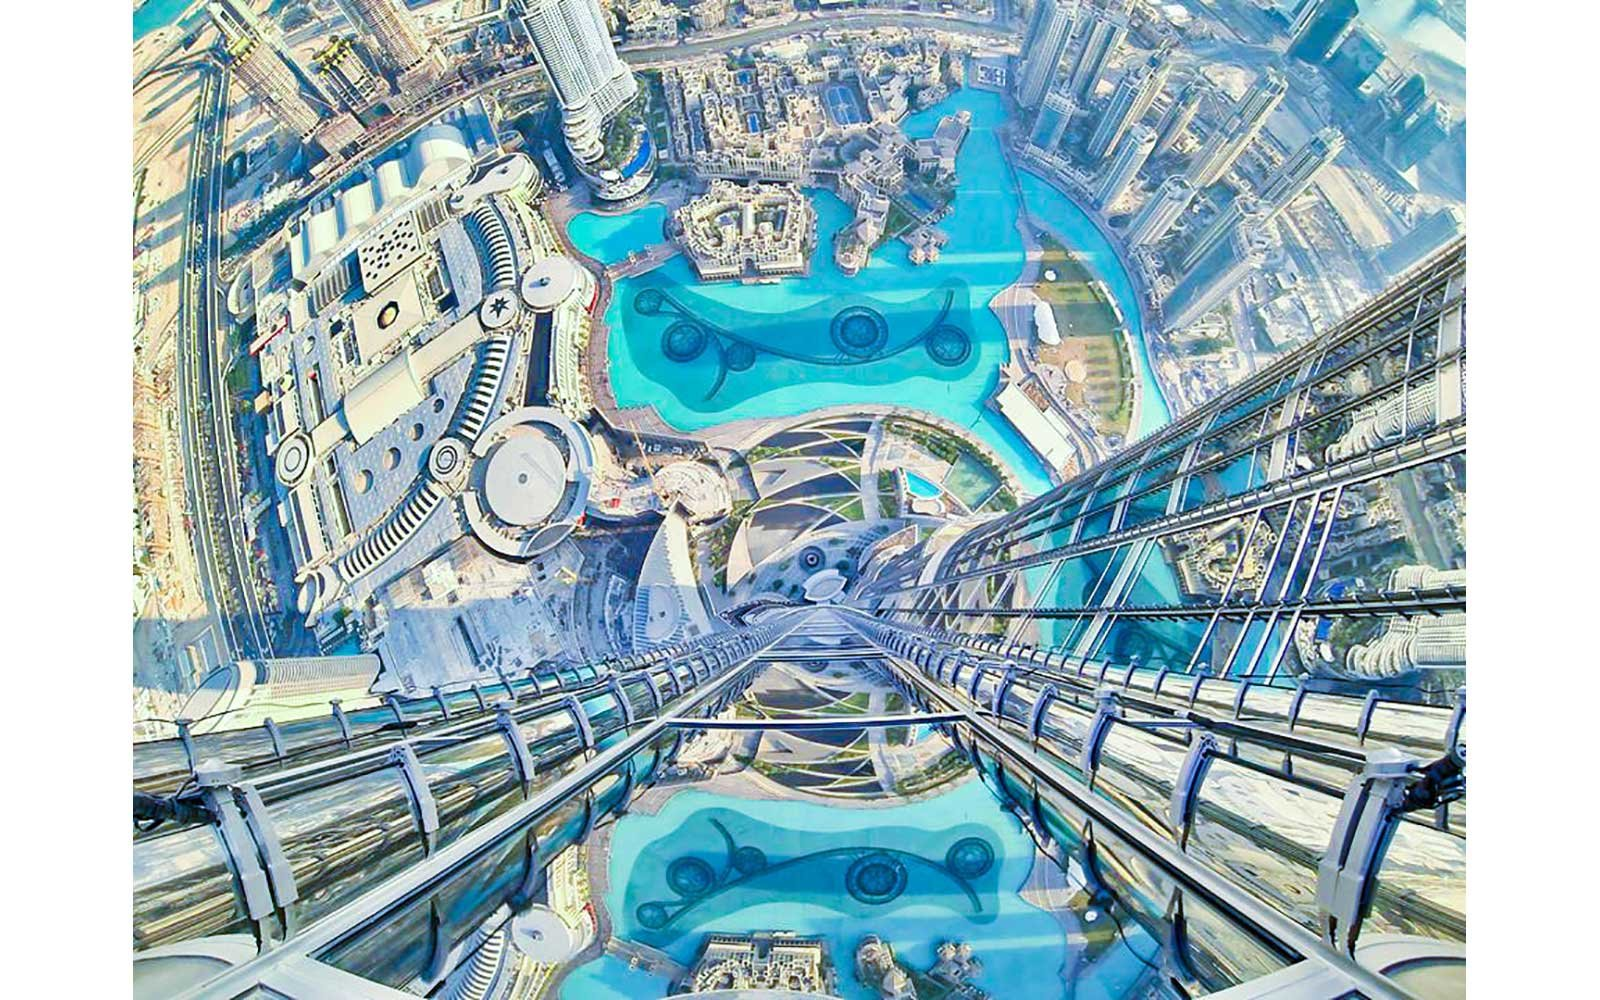 View from the Burj Khalifa in Dubai